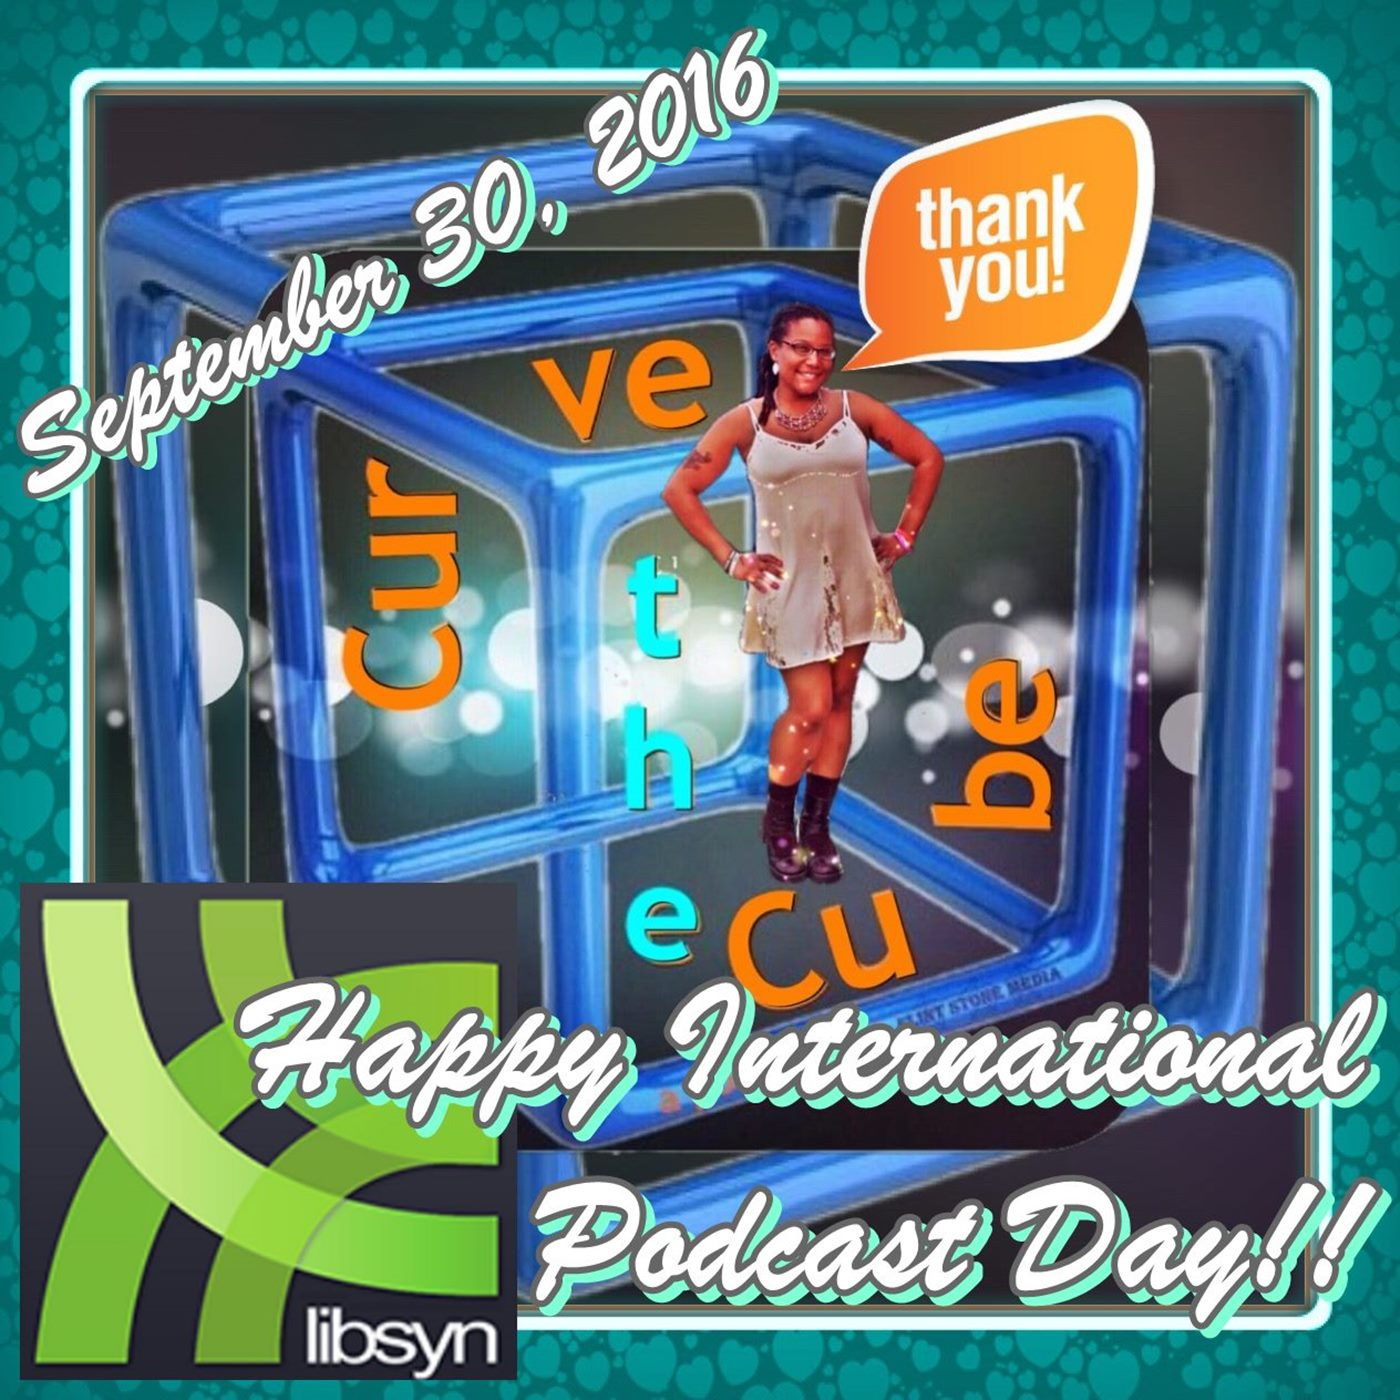 BONUS - Happy International Day of Podcasting